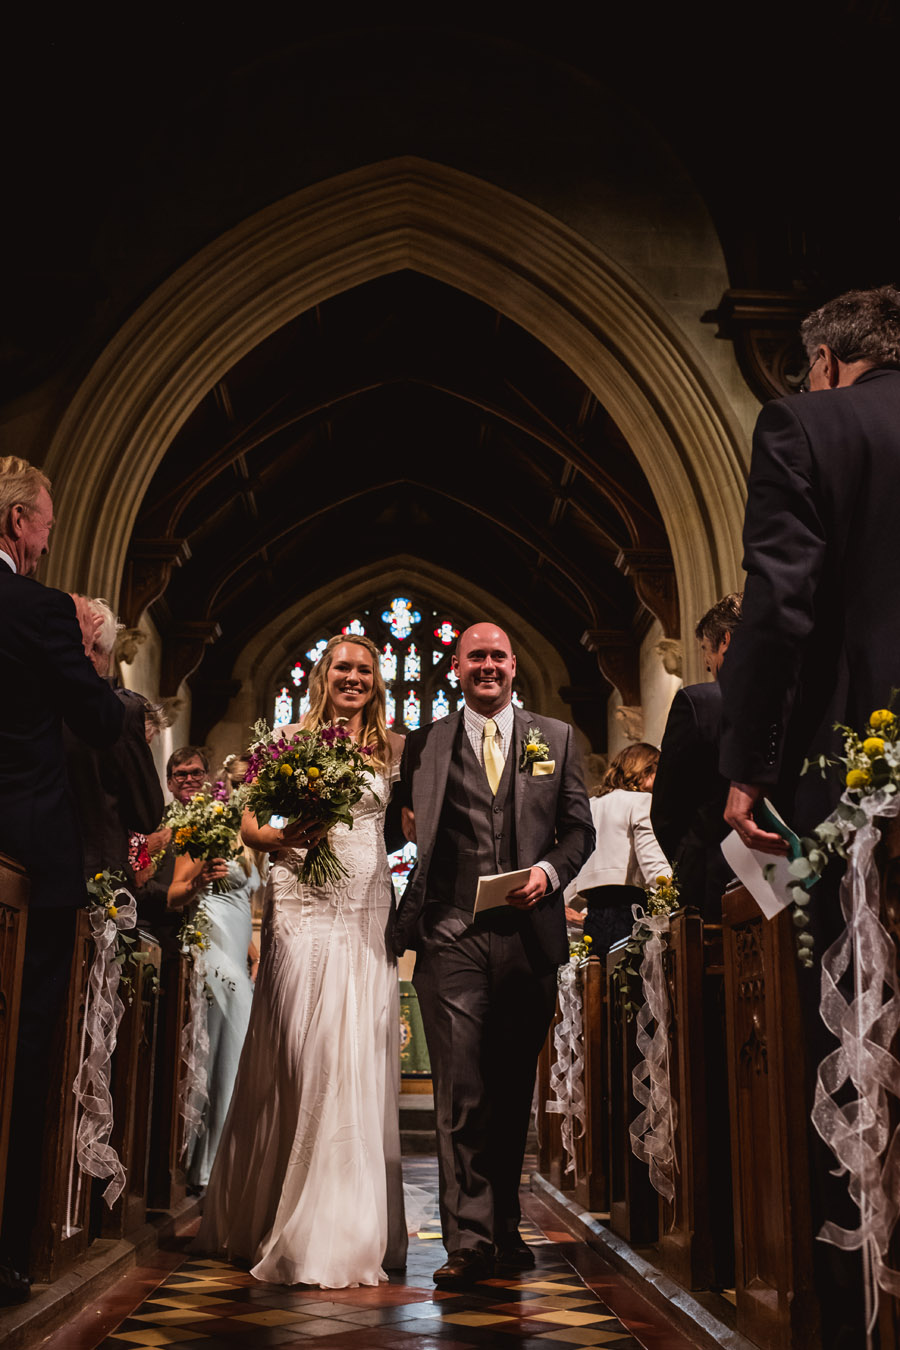 Farm wedding in Dorset full of DIY styling ideas, images by Dorset wedding photographer Robin Goodlad Photography (16)